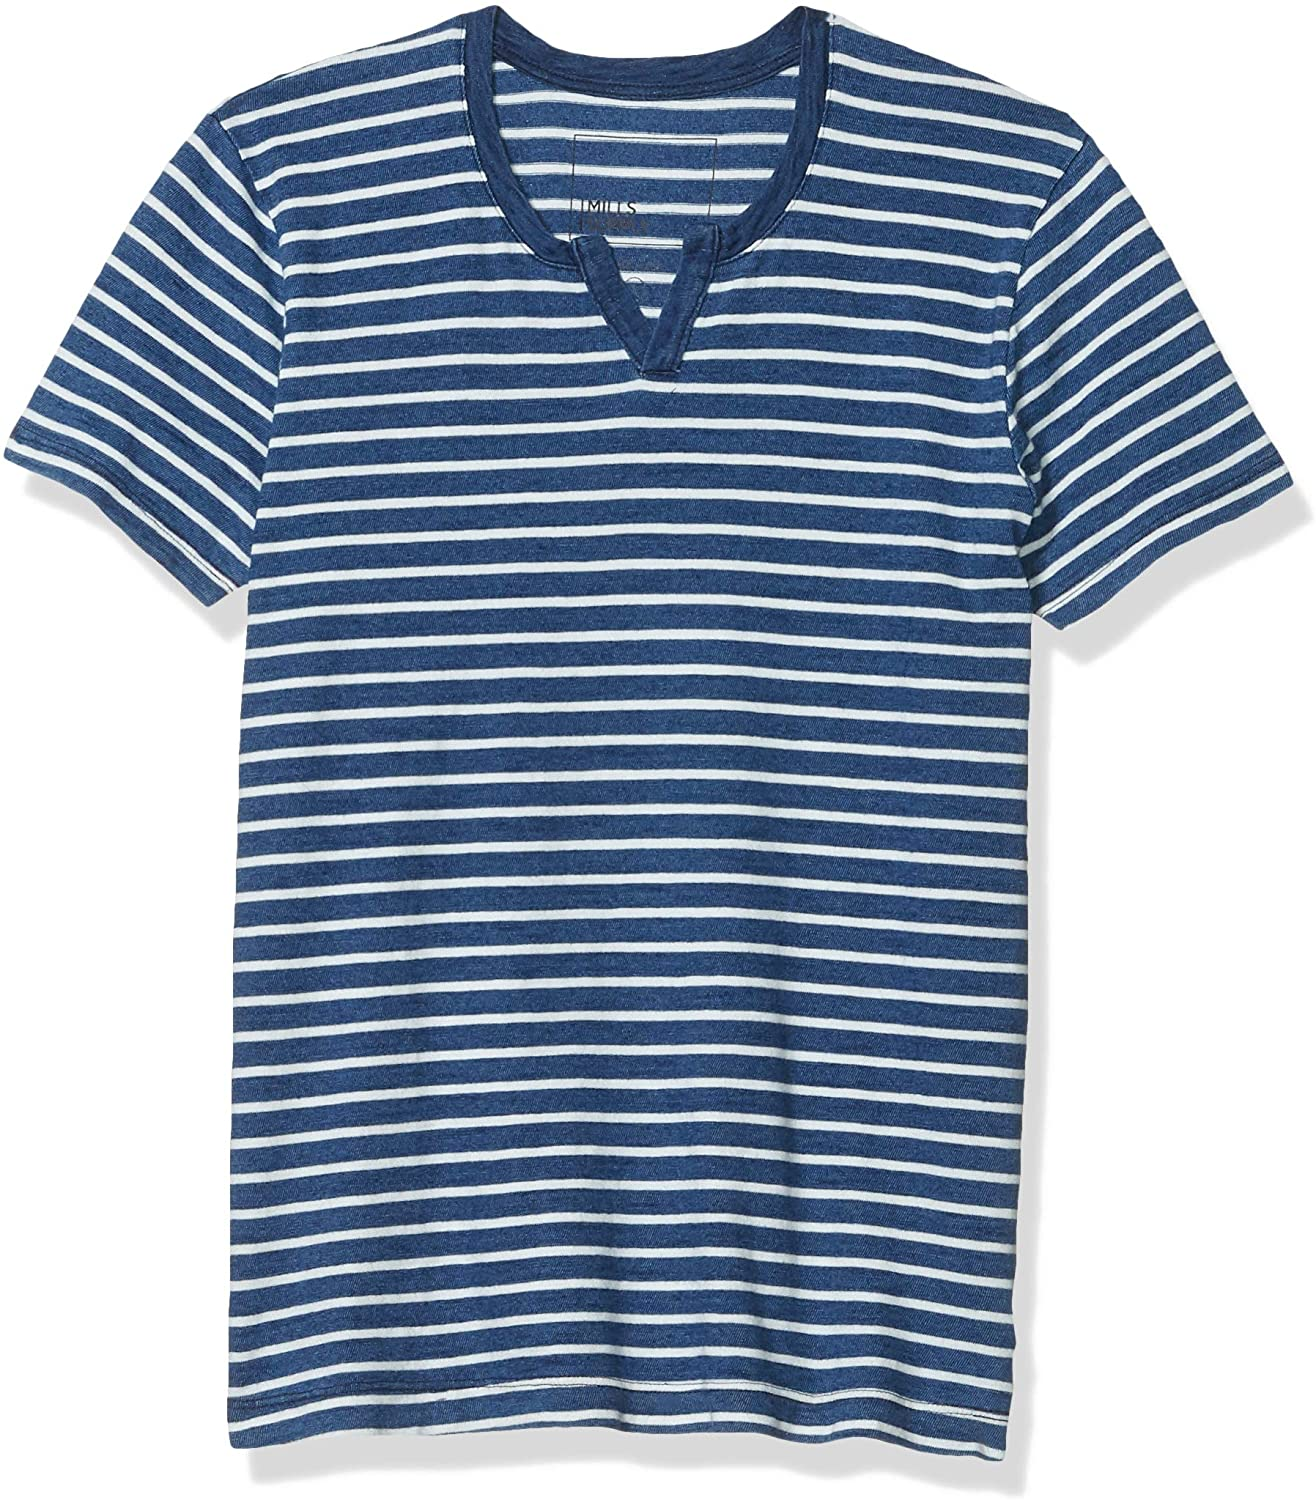 Splendid Mills Men's Short Sleeve Henley Striped Tee